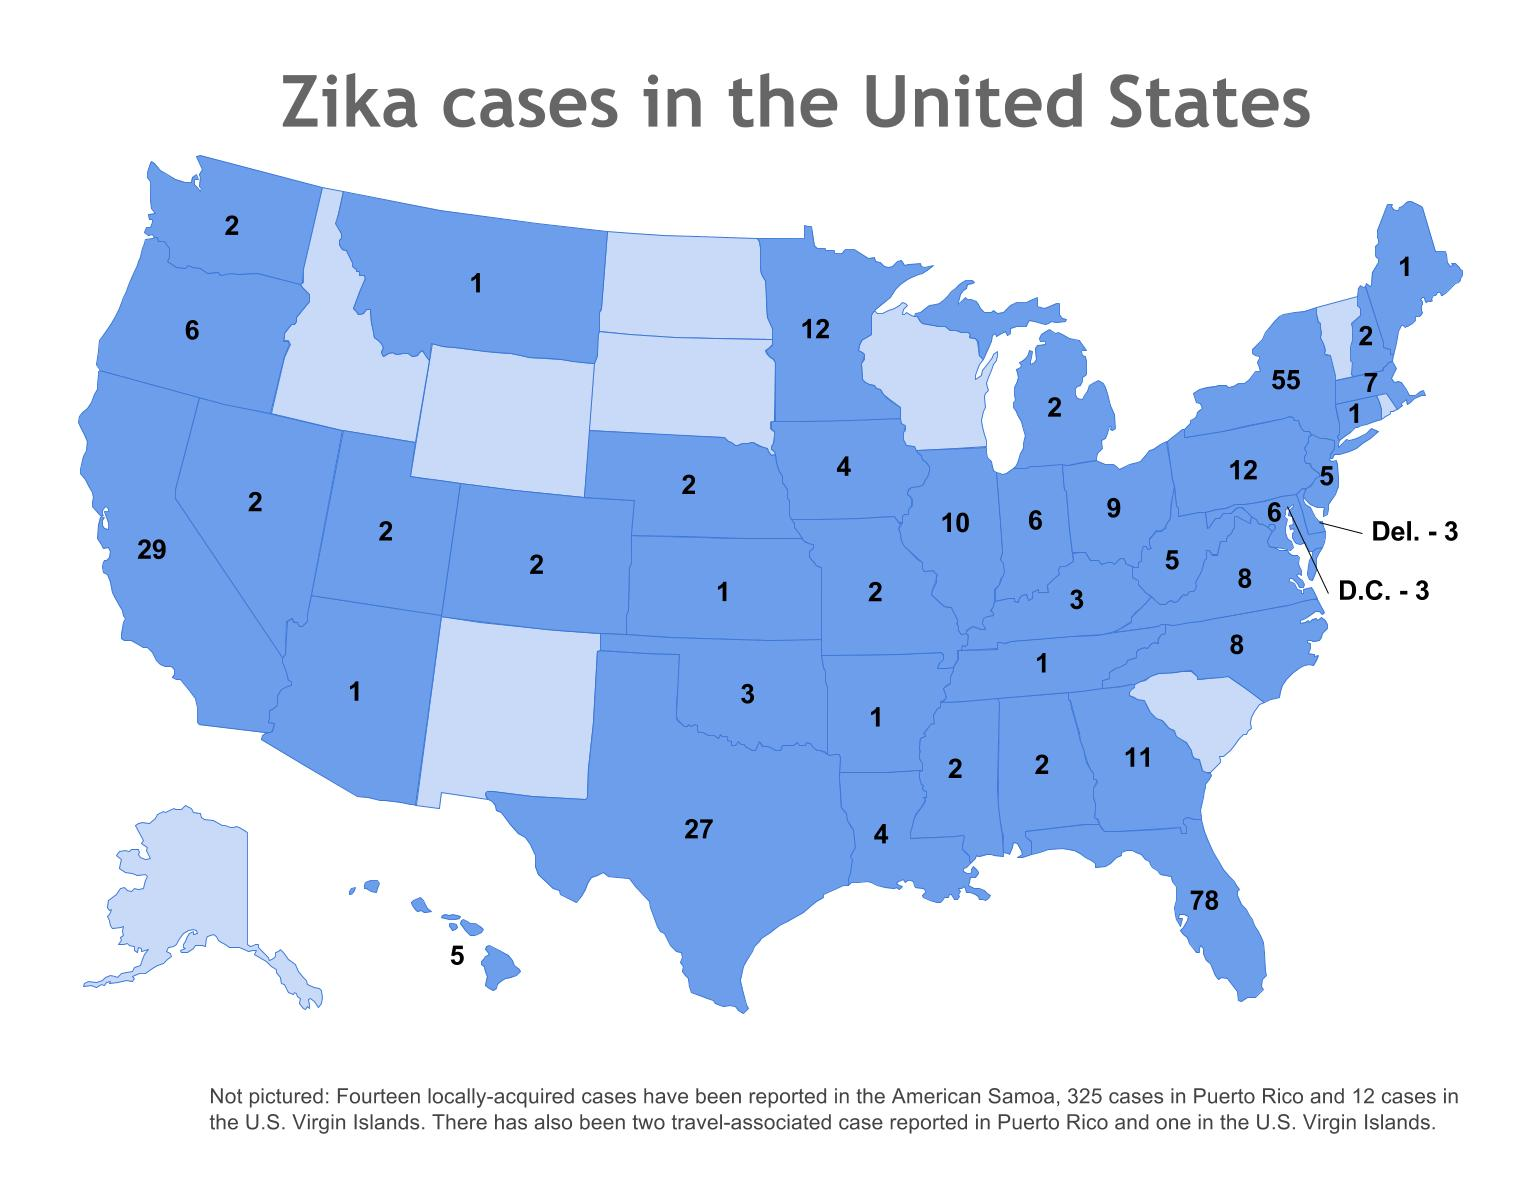 Where in the US have Zika cases been reported April 8 update